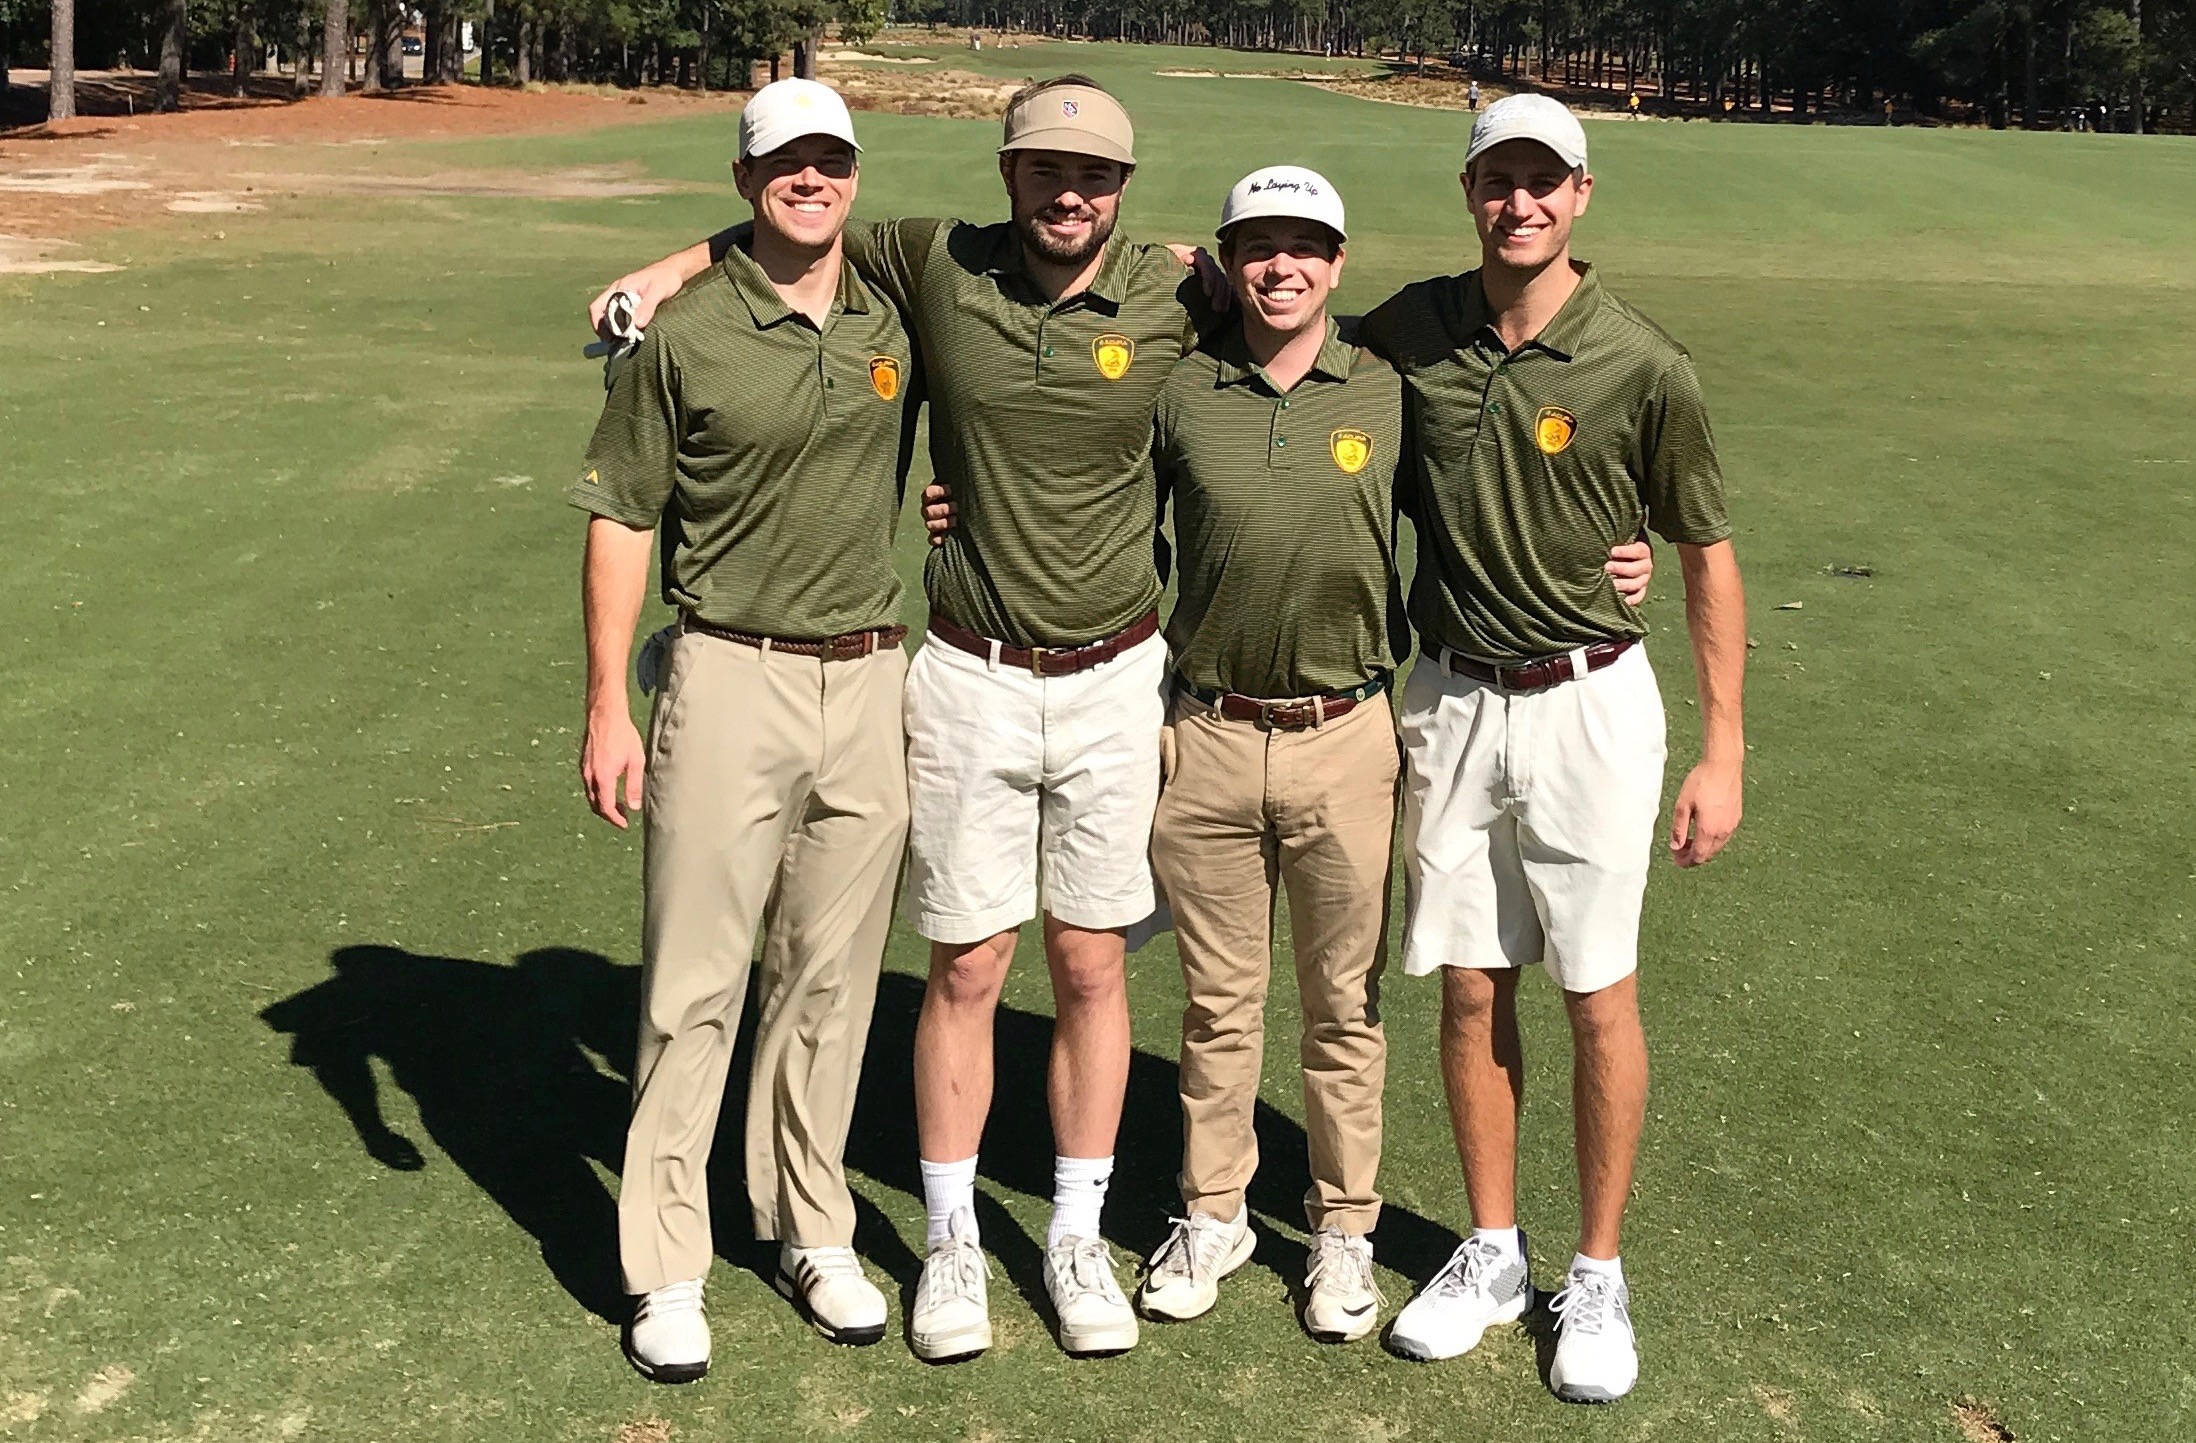 Previous Winners Pictured at Pinehurst No. 2 - (L to R): Greg Schultz (MSHA Class 51), Albert Elmore, Alex Snow, Brandon Saureman